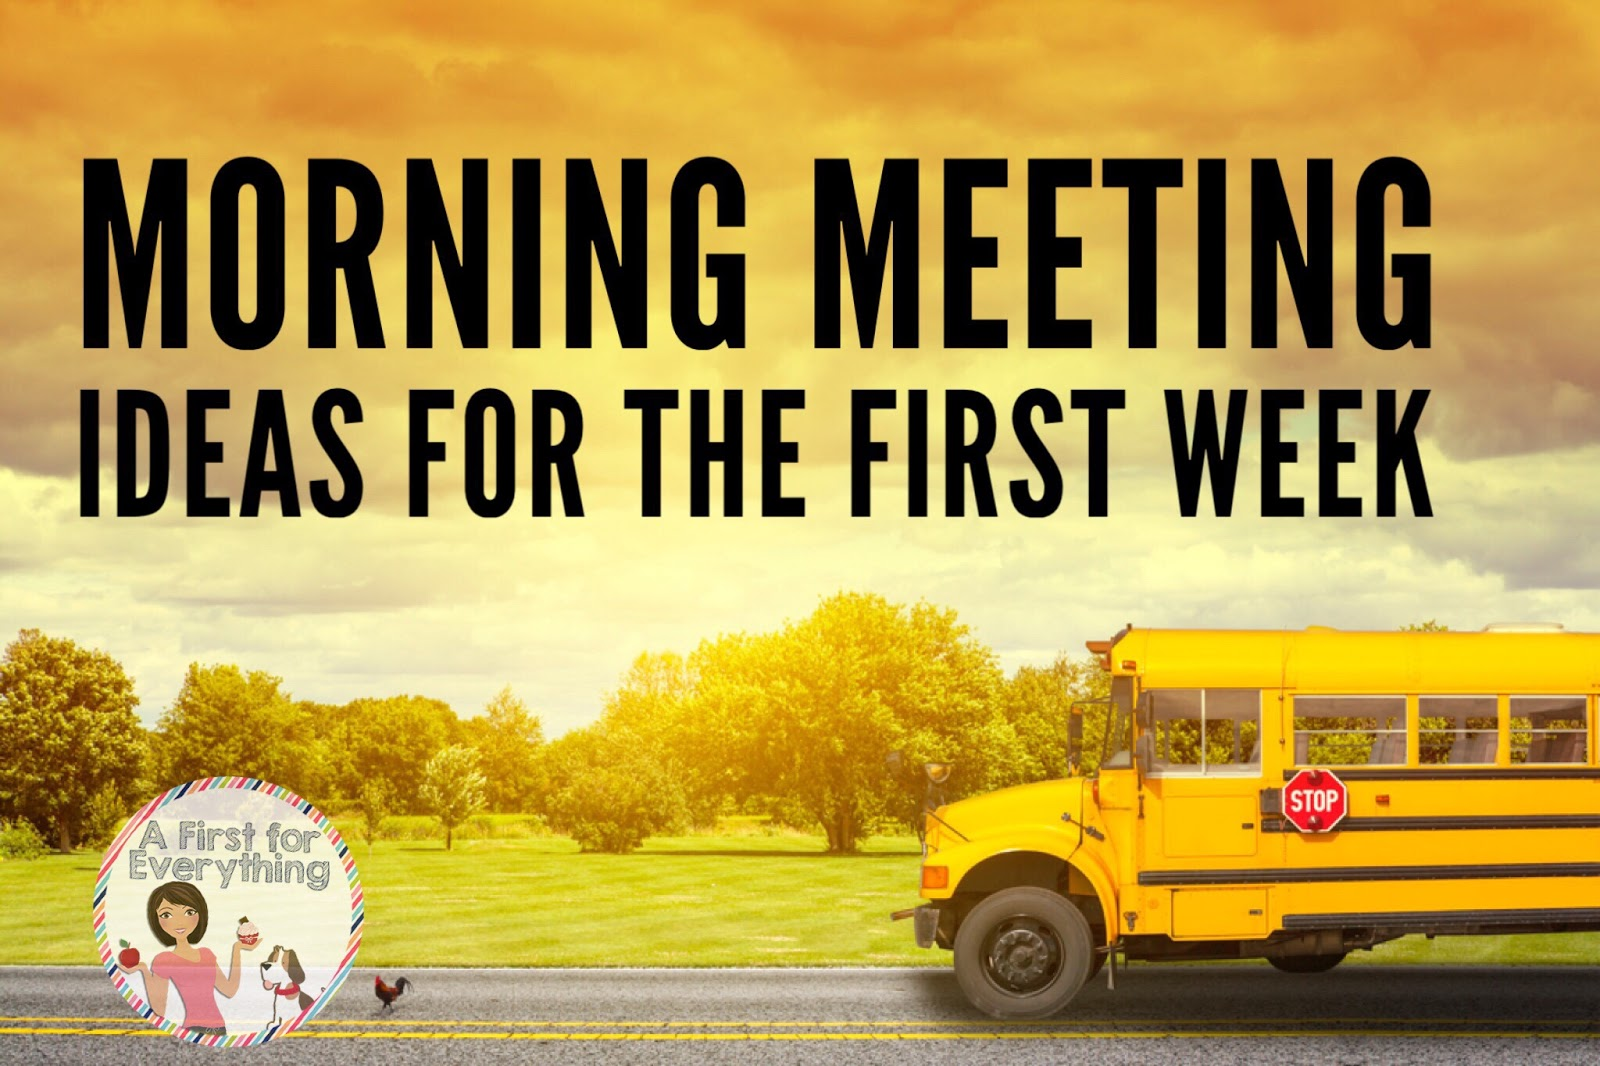 A First For Everything Over 20 Morning Meeting Ideas For The First